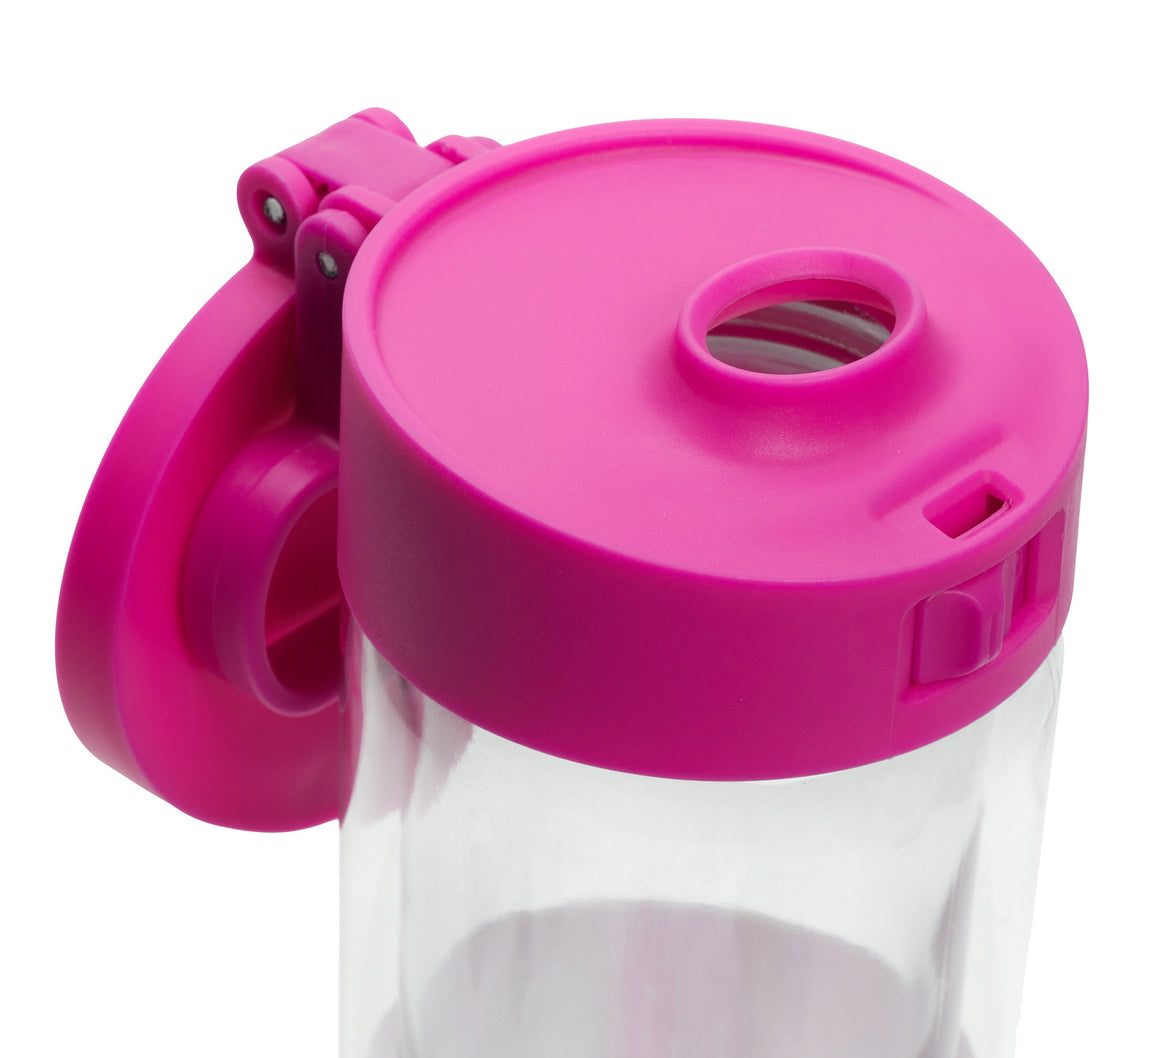 Glasstic Water Bottle Replacement Lid Cap Pink